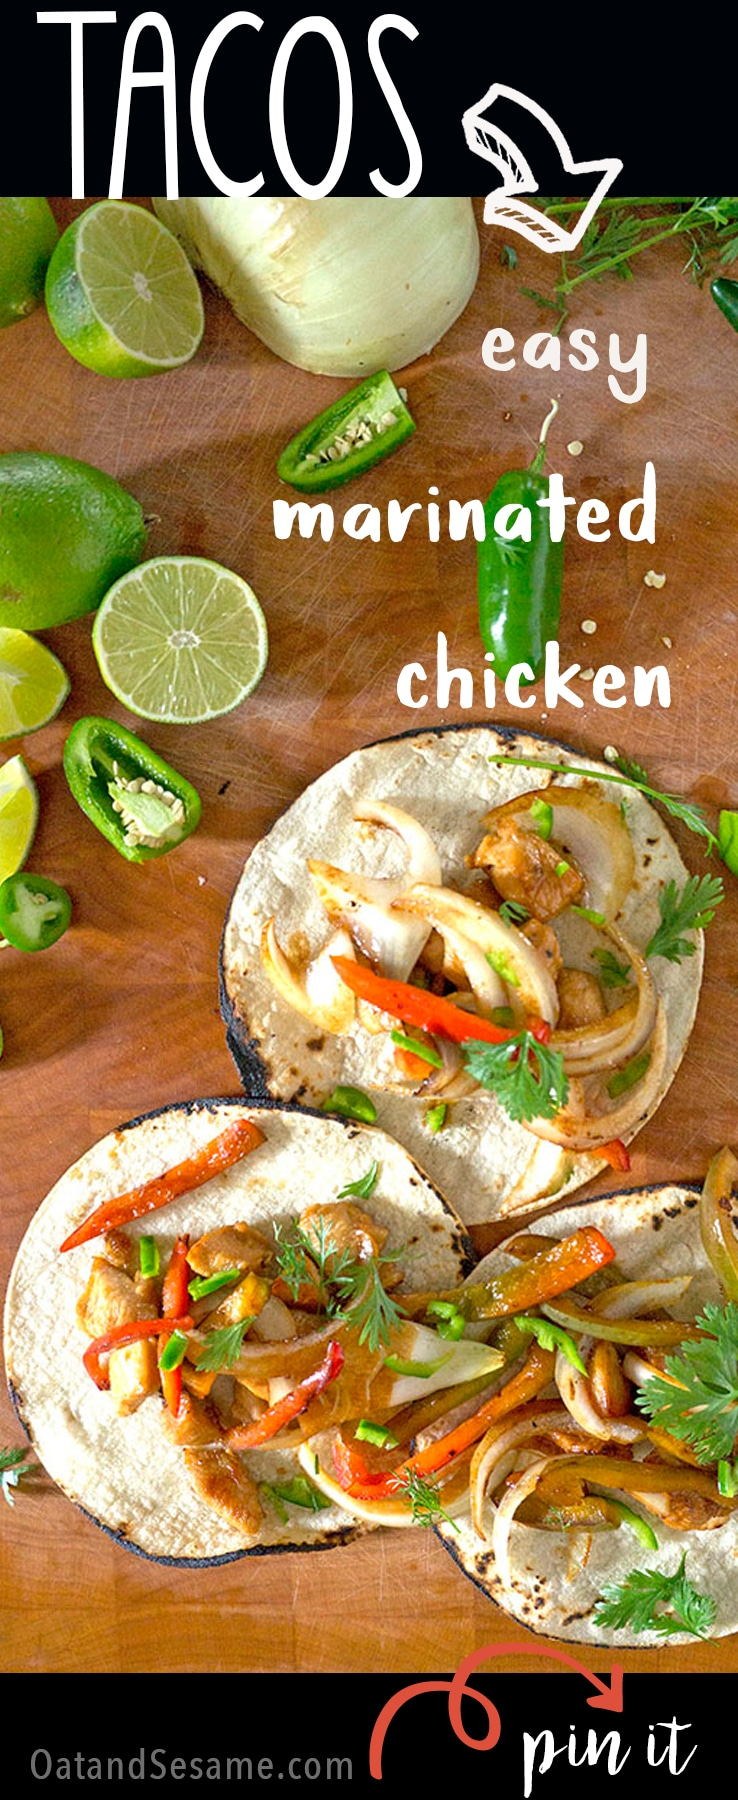 Easy Marinated Chicken Tacos - perfect weeknight meal for #TacoTuesday! | Recipe at OatandSesame.com